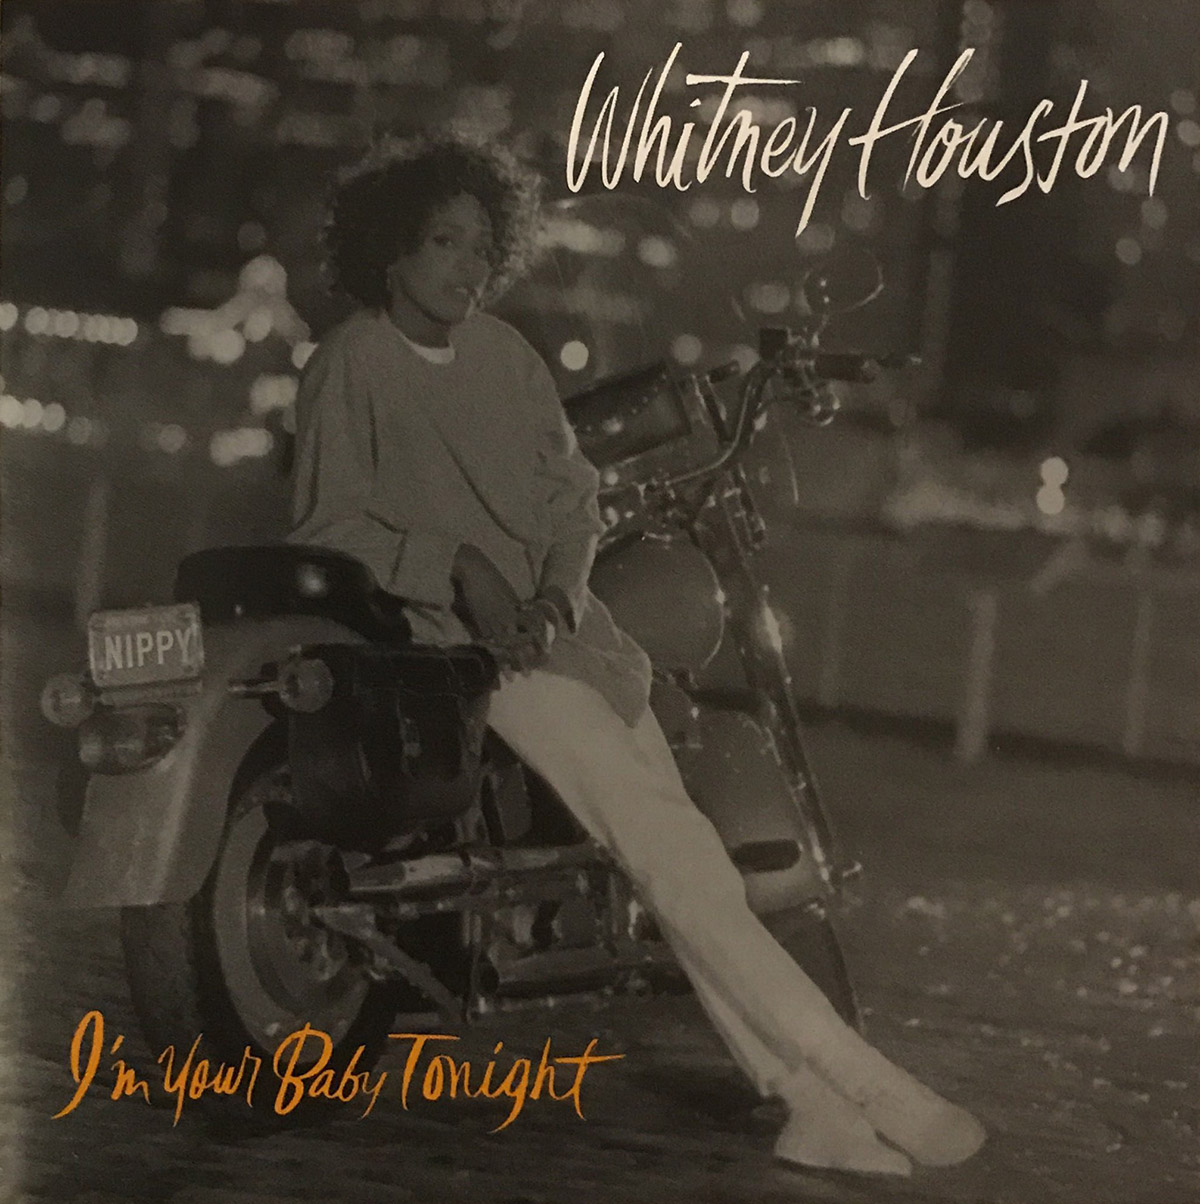 Whitney Houston - I'm Your Baby Tonight single front cover